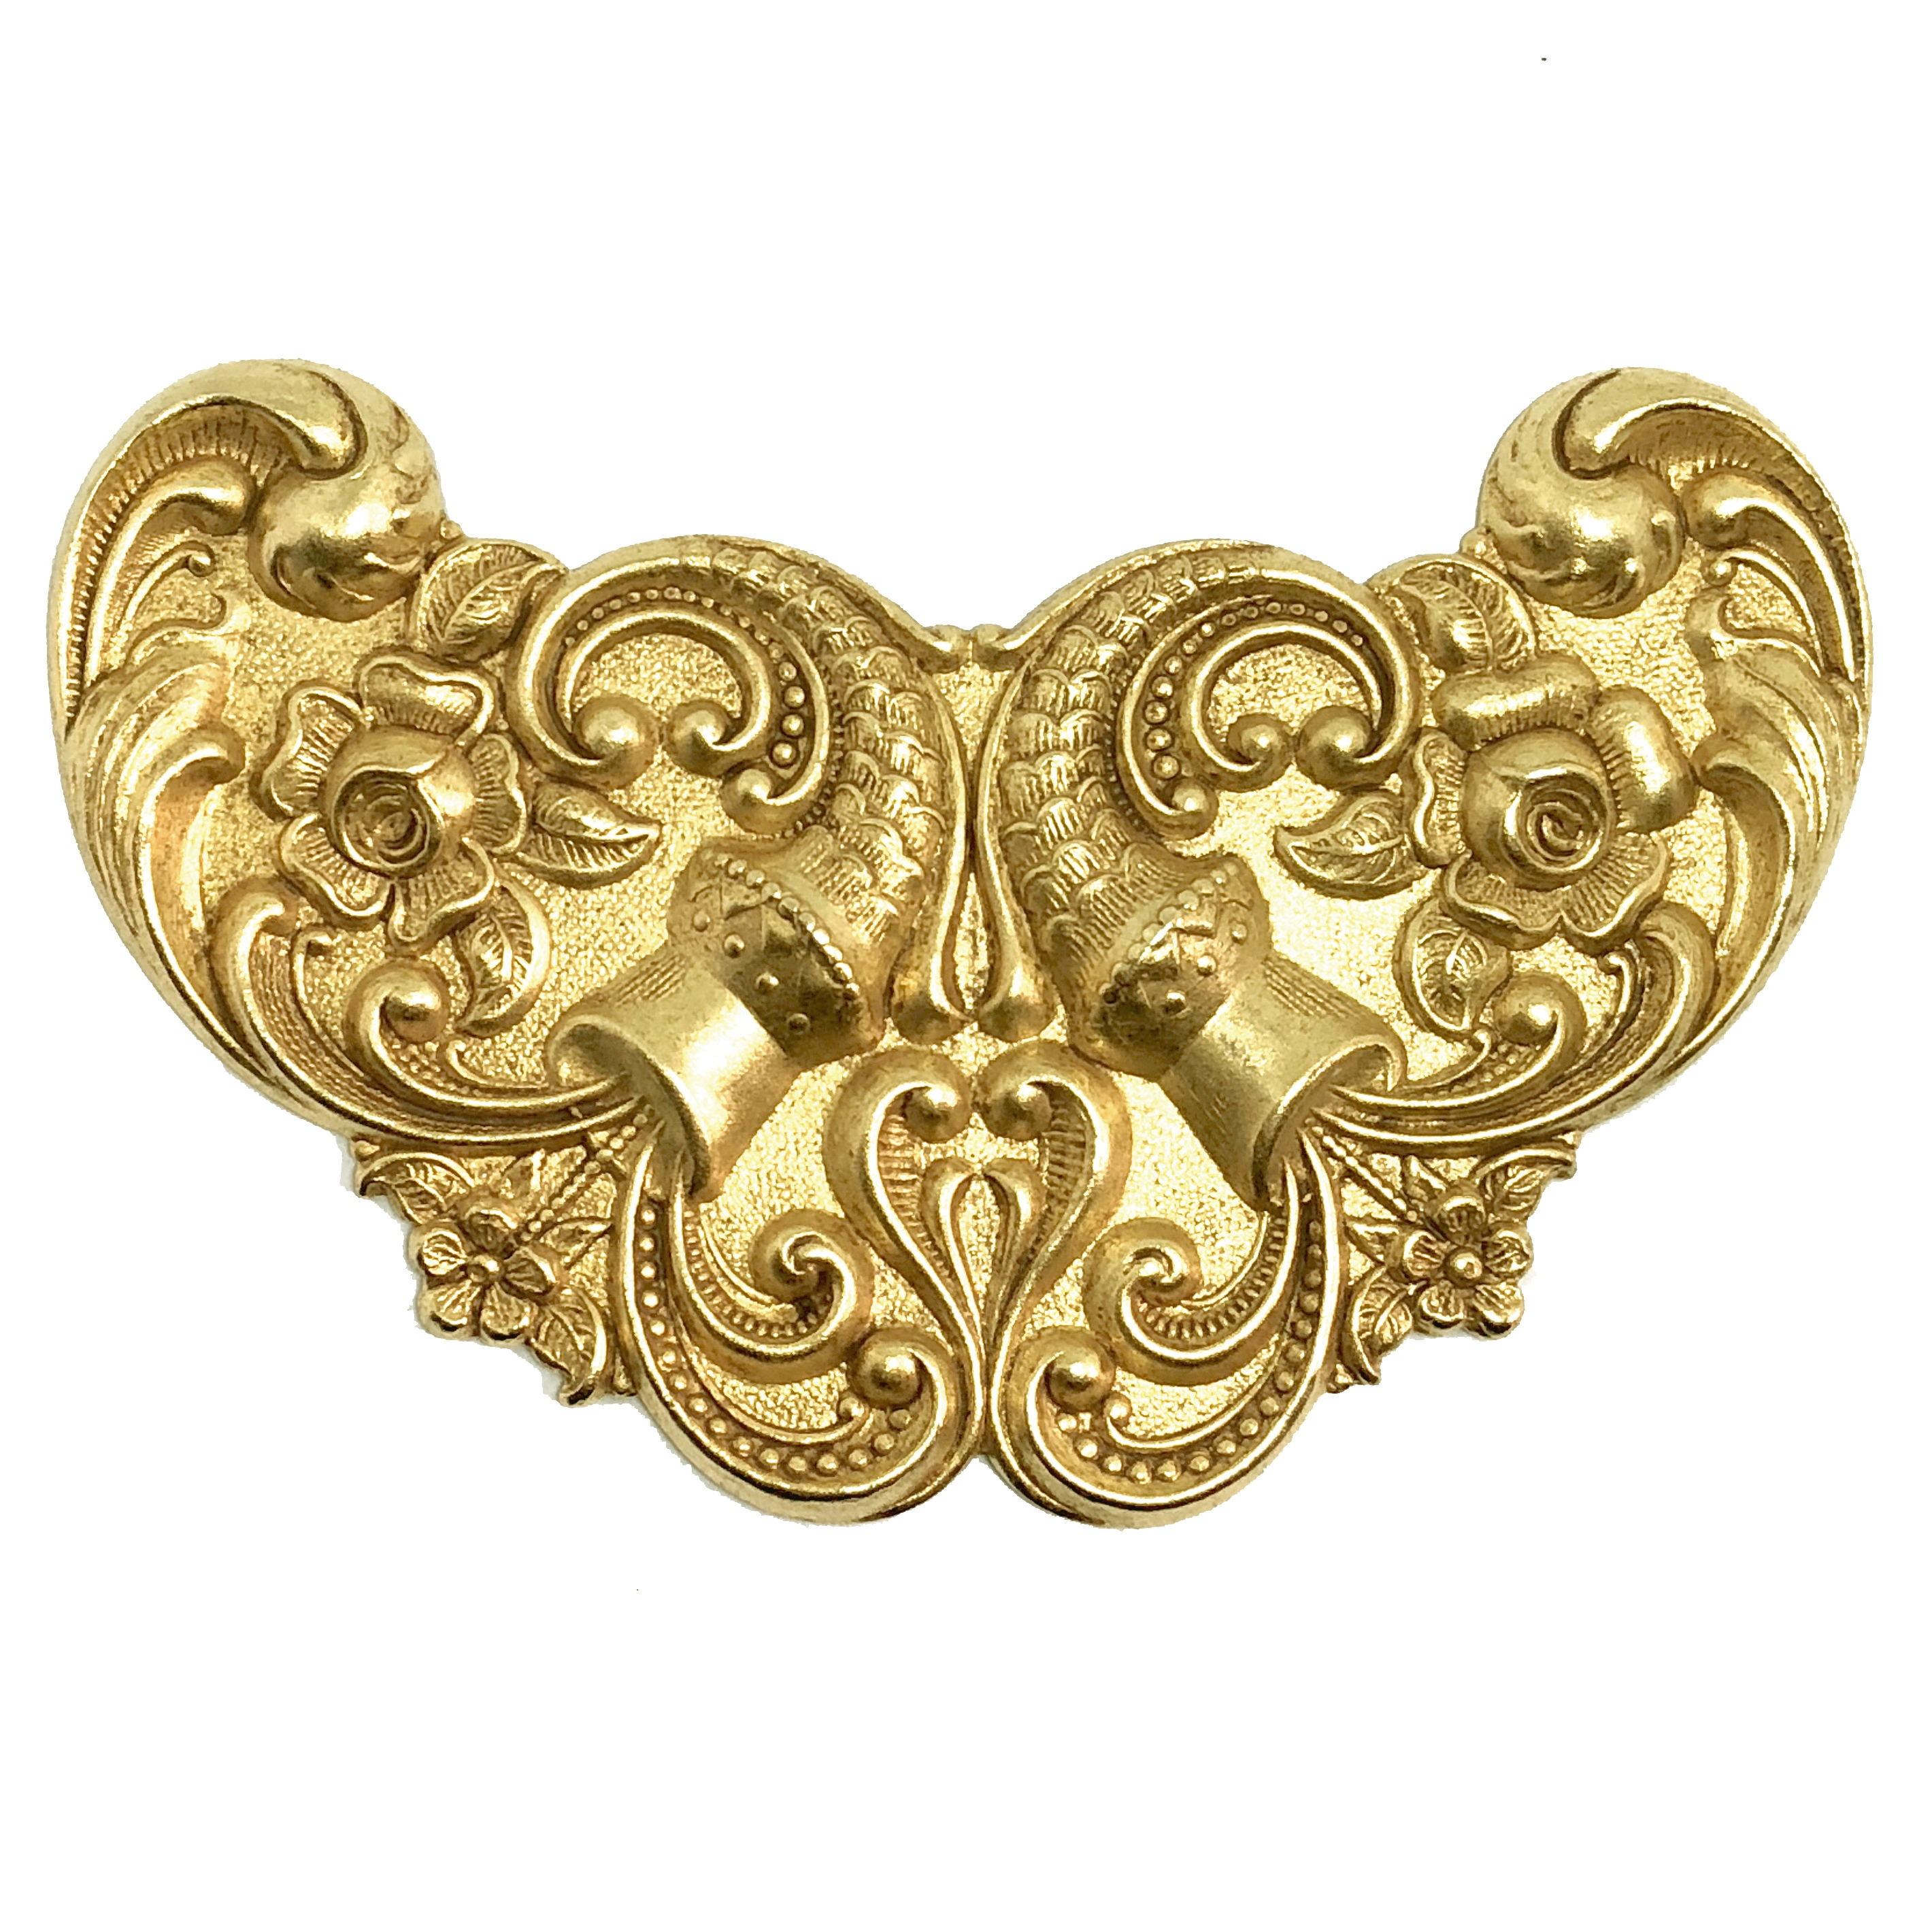 Victorian brass stampings, vintage jewelry supplies, 08475, cornucopia, classic gold, winged plaque, winged stamping, floral stamping, US made, nickel free, bsueboutiques, brass jewelry parts, brass stampings, centerpiece, plaque